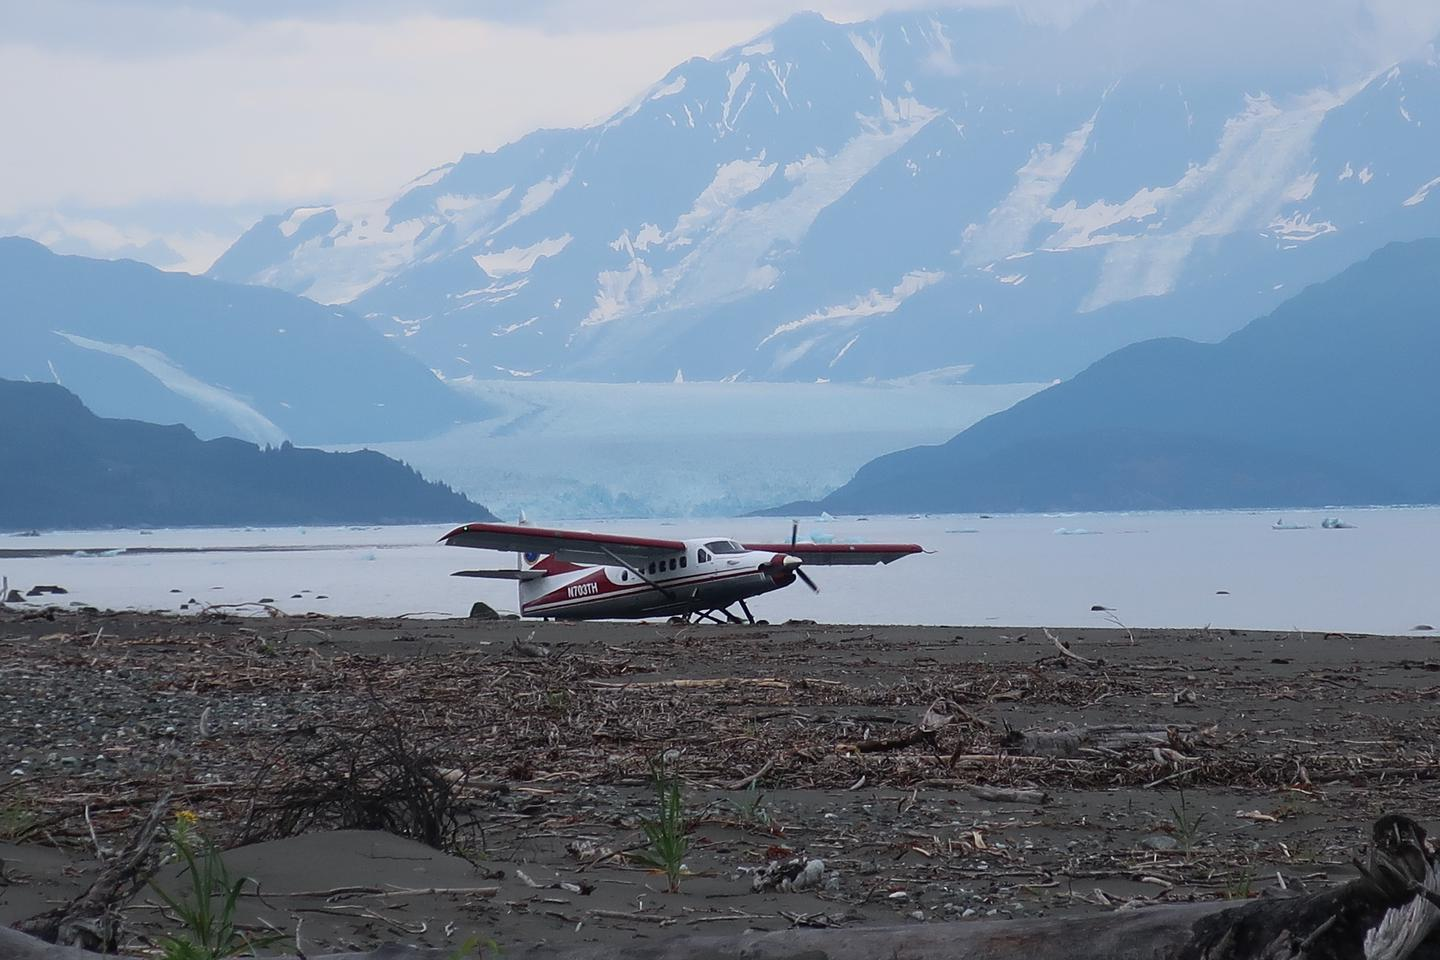 The Yakutat beach plane landing depends on the tide and if there are icebergs on the beach.